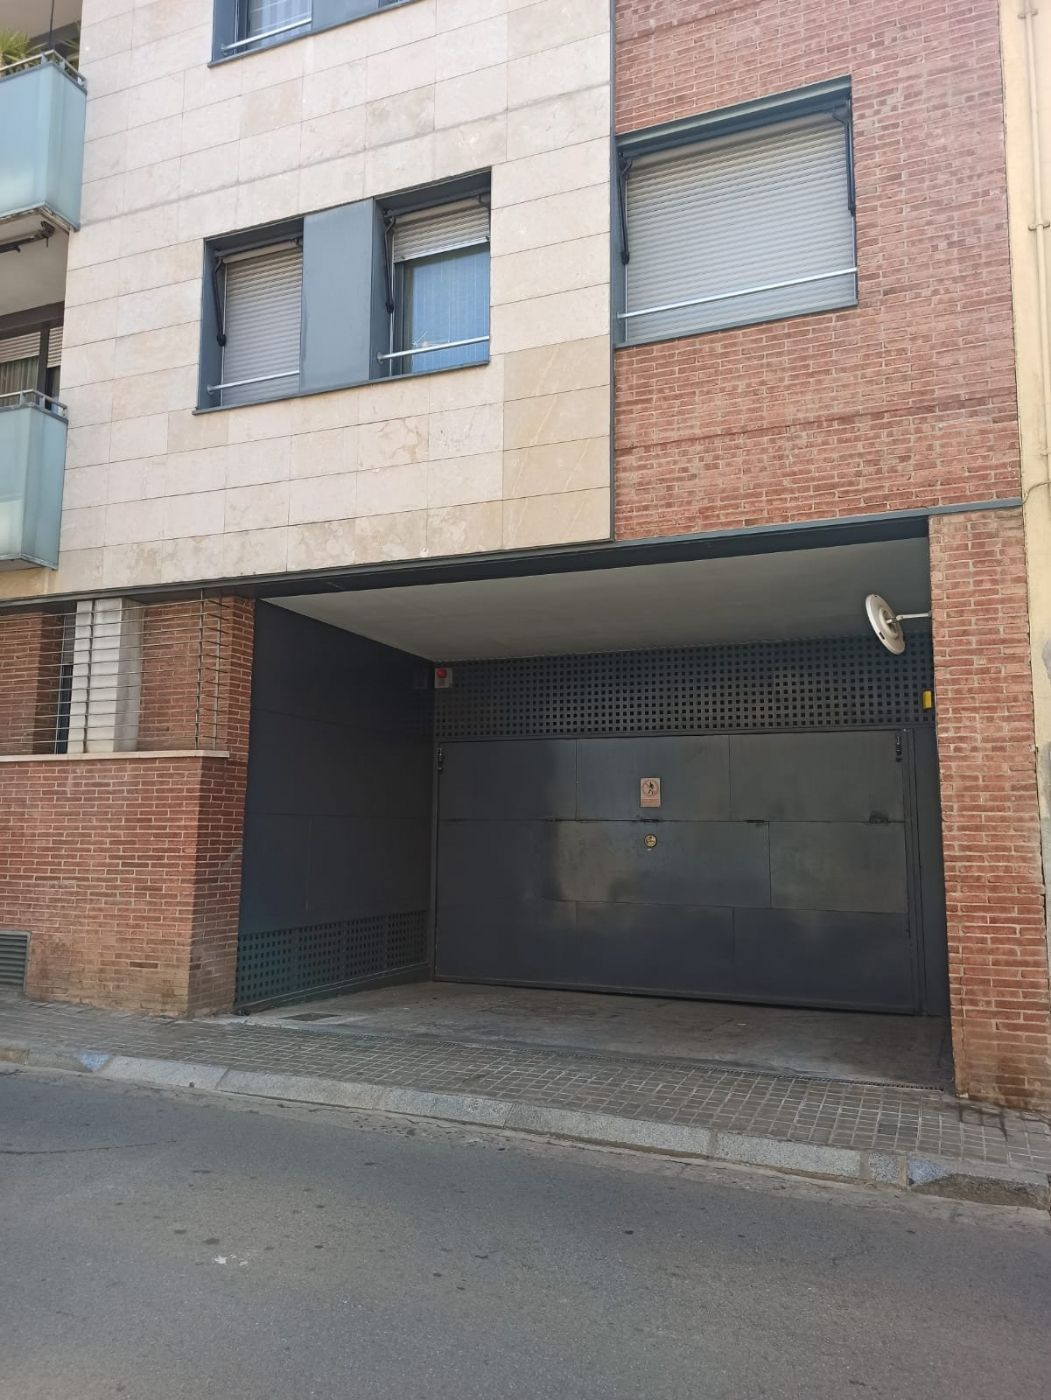 Alquiler Parking coche en Carrer unio, 172. Parking c/unió 172 centre sabadell